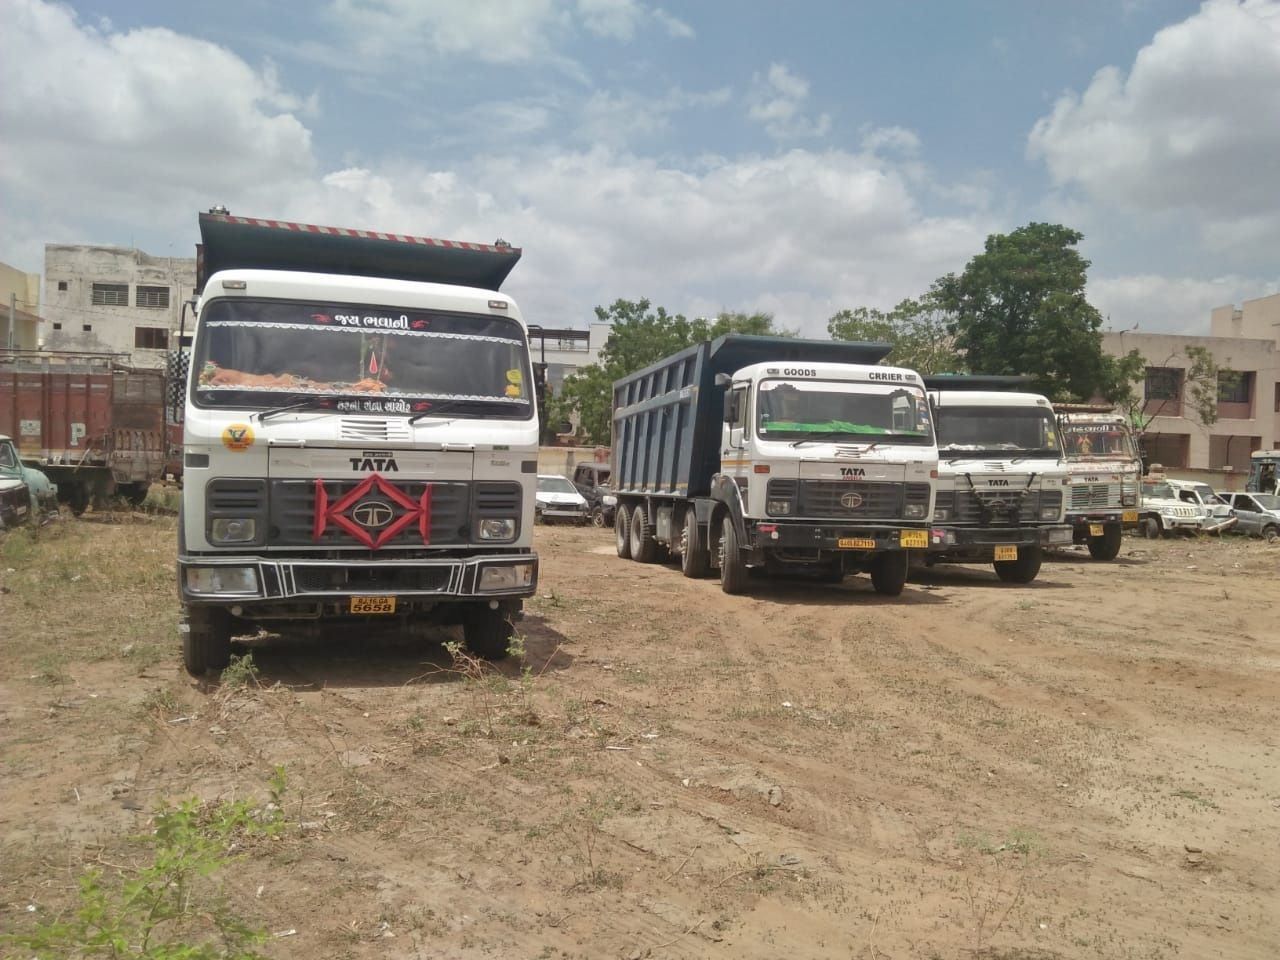 Drivers seize six vehicles for stealing minerals in Dec - Complaint against lease owners